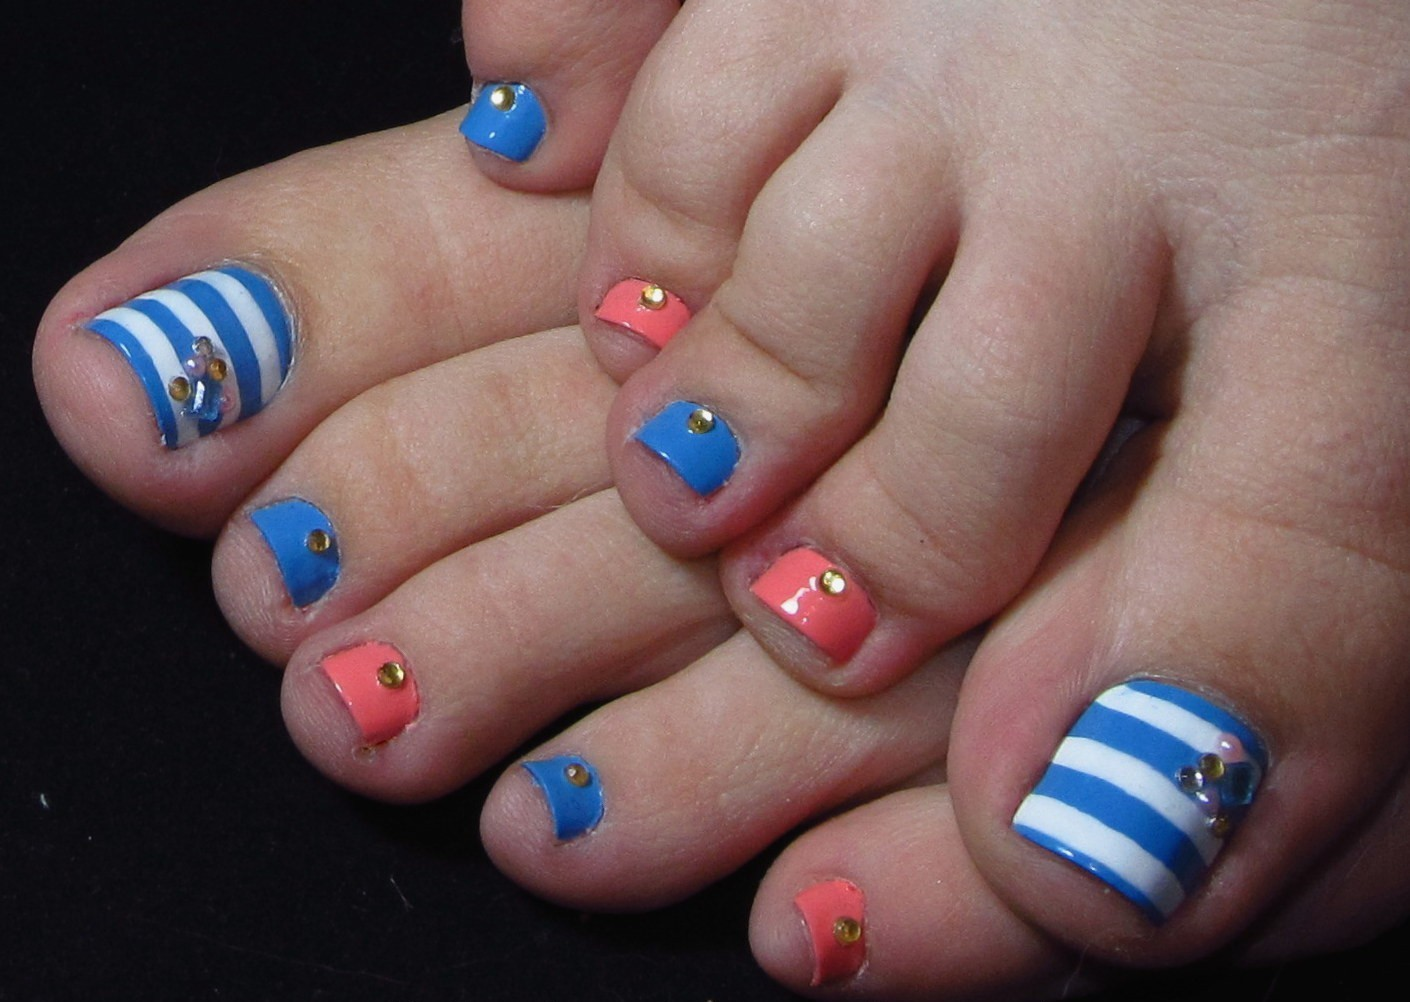 Top Pedicure Nail Designs Designs Ideas You Need To Try This 2018 @[Summer Nail Designs for 2018 Best Nail Art Ideas Best Nail Art Ideas for S